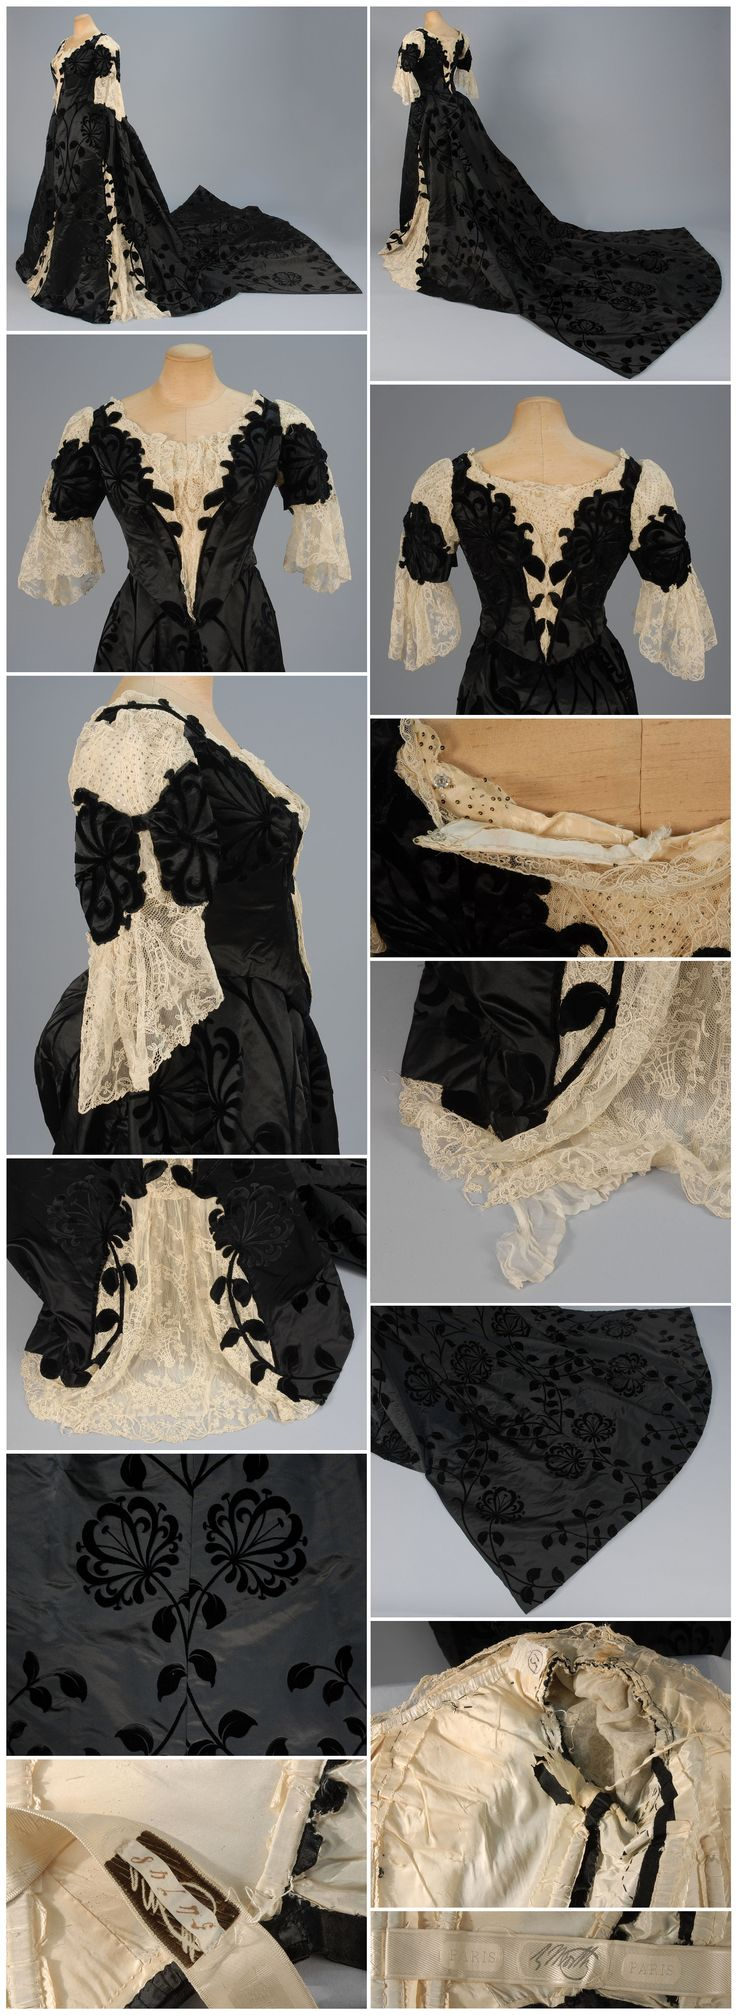 WORTH EVENING DRESS with COURT TRAIN WORN by FORMER FIRST LADY HARRIET LANE at the COURT of ST. JAMES, c. 1898. 2-piece black silk velvet voided to satin, boned back-lacing bodice cut along velvet floral and inset at shoulder, front and back with cream Alencon lace over chiffon with spangles, short sleeve having lace ruffle, matching skirt with three front lace gores over pleated chiffon and long, square train, silk lining. Whitaker Auctions.